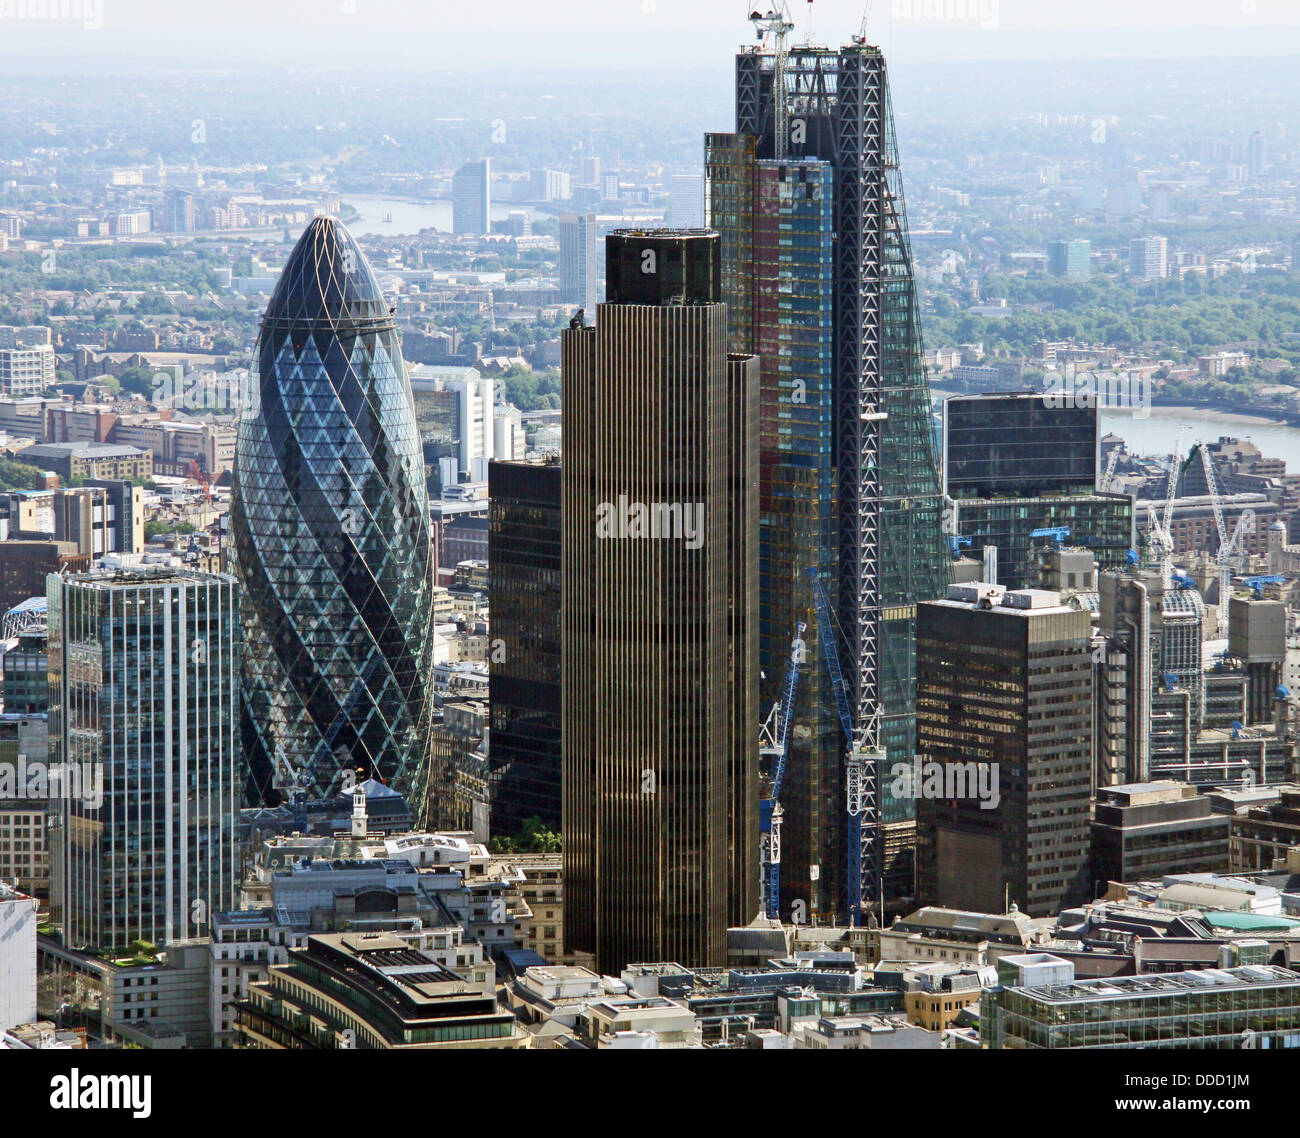 aerial view of the City of London including the Gherkin, Cheese Grater and NatWest building - Stock Image